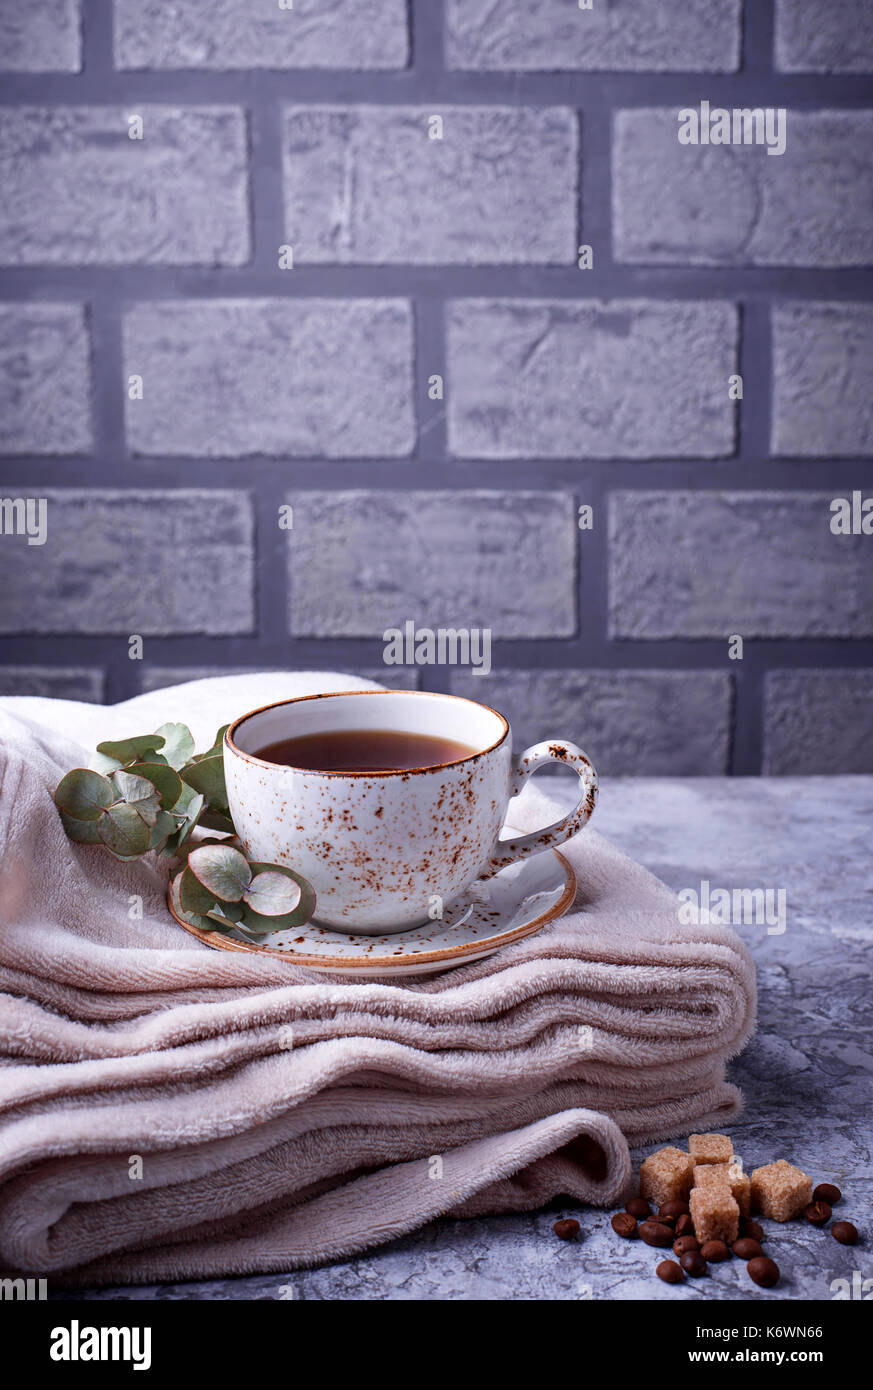 Coffee and wrap, cozy Scandinavian home interior - Stock Image